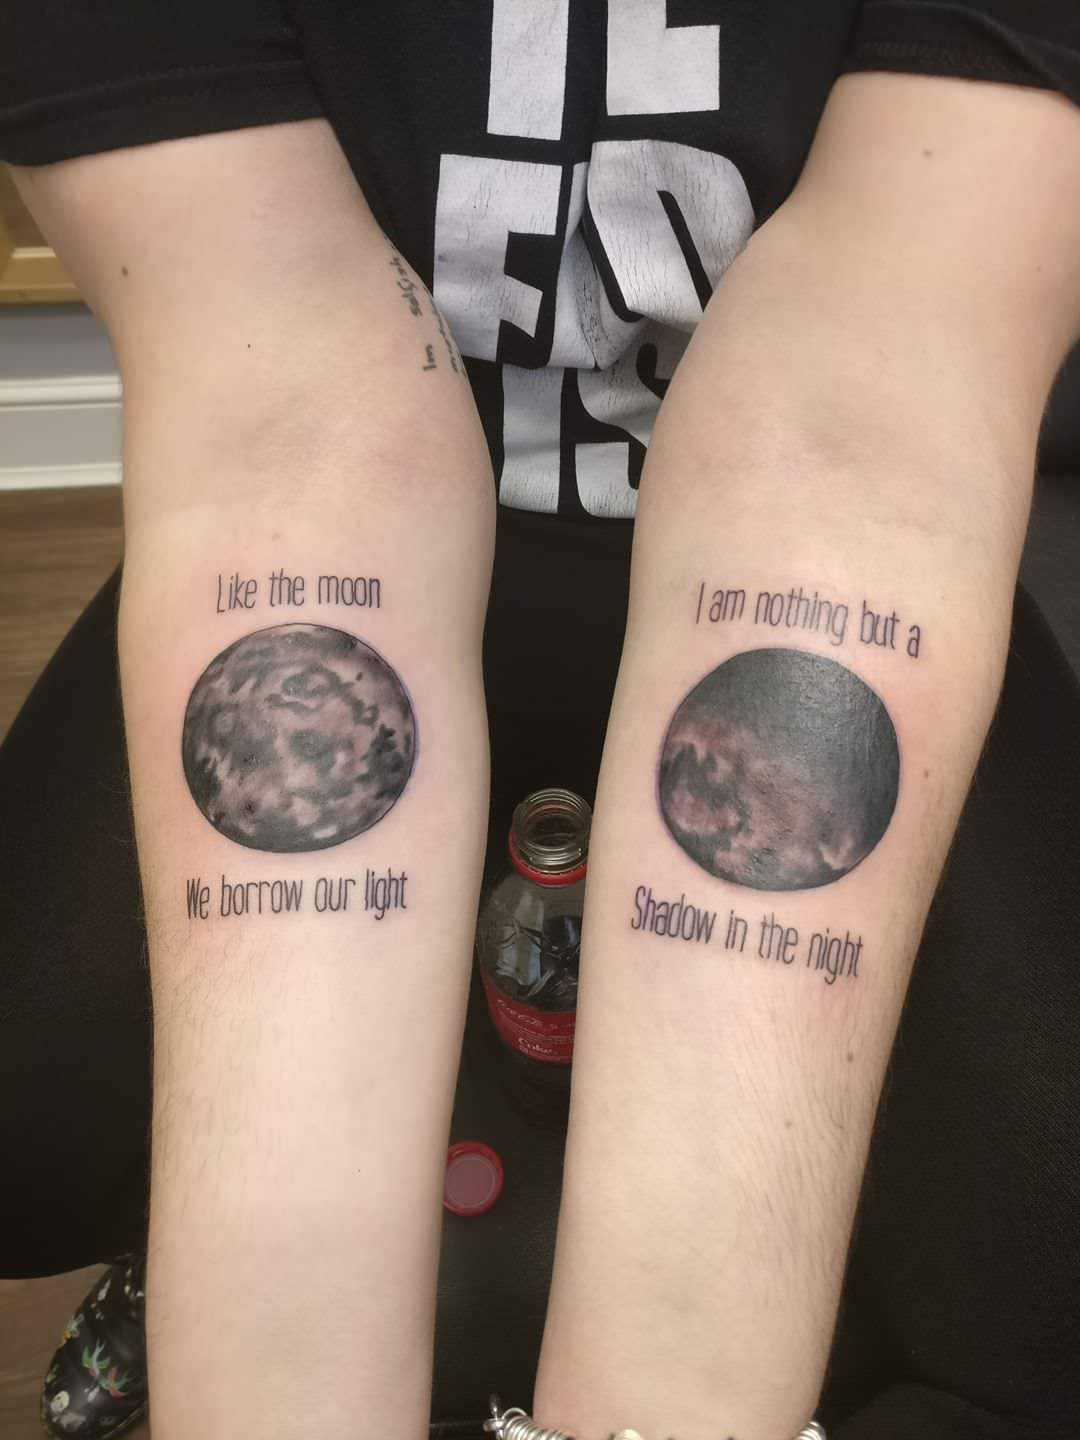 007ac5e7023f1 My Part II inspired tattoos that I got yesterday (/r/Paramore ...